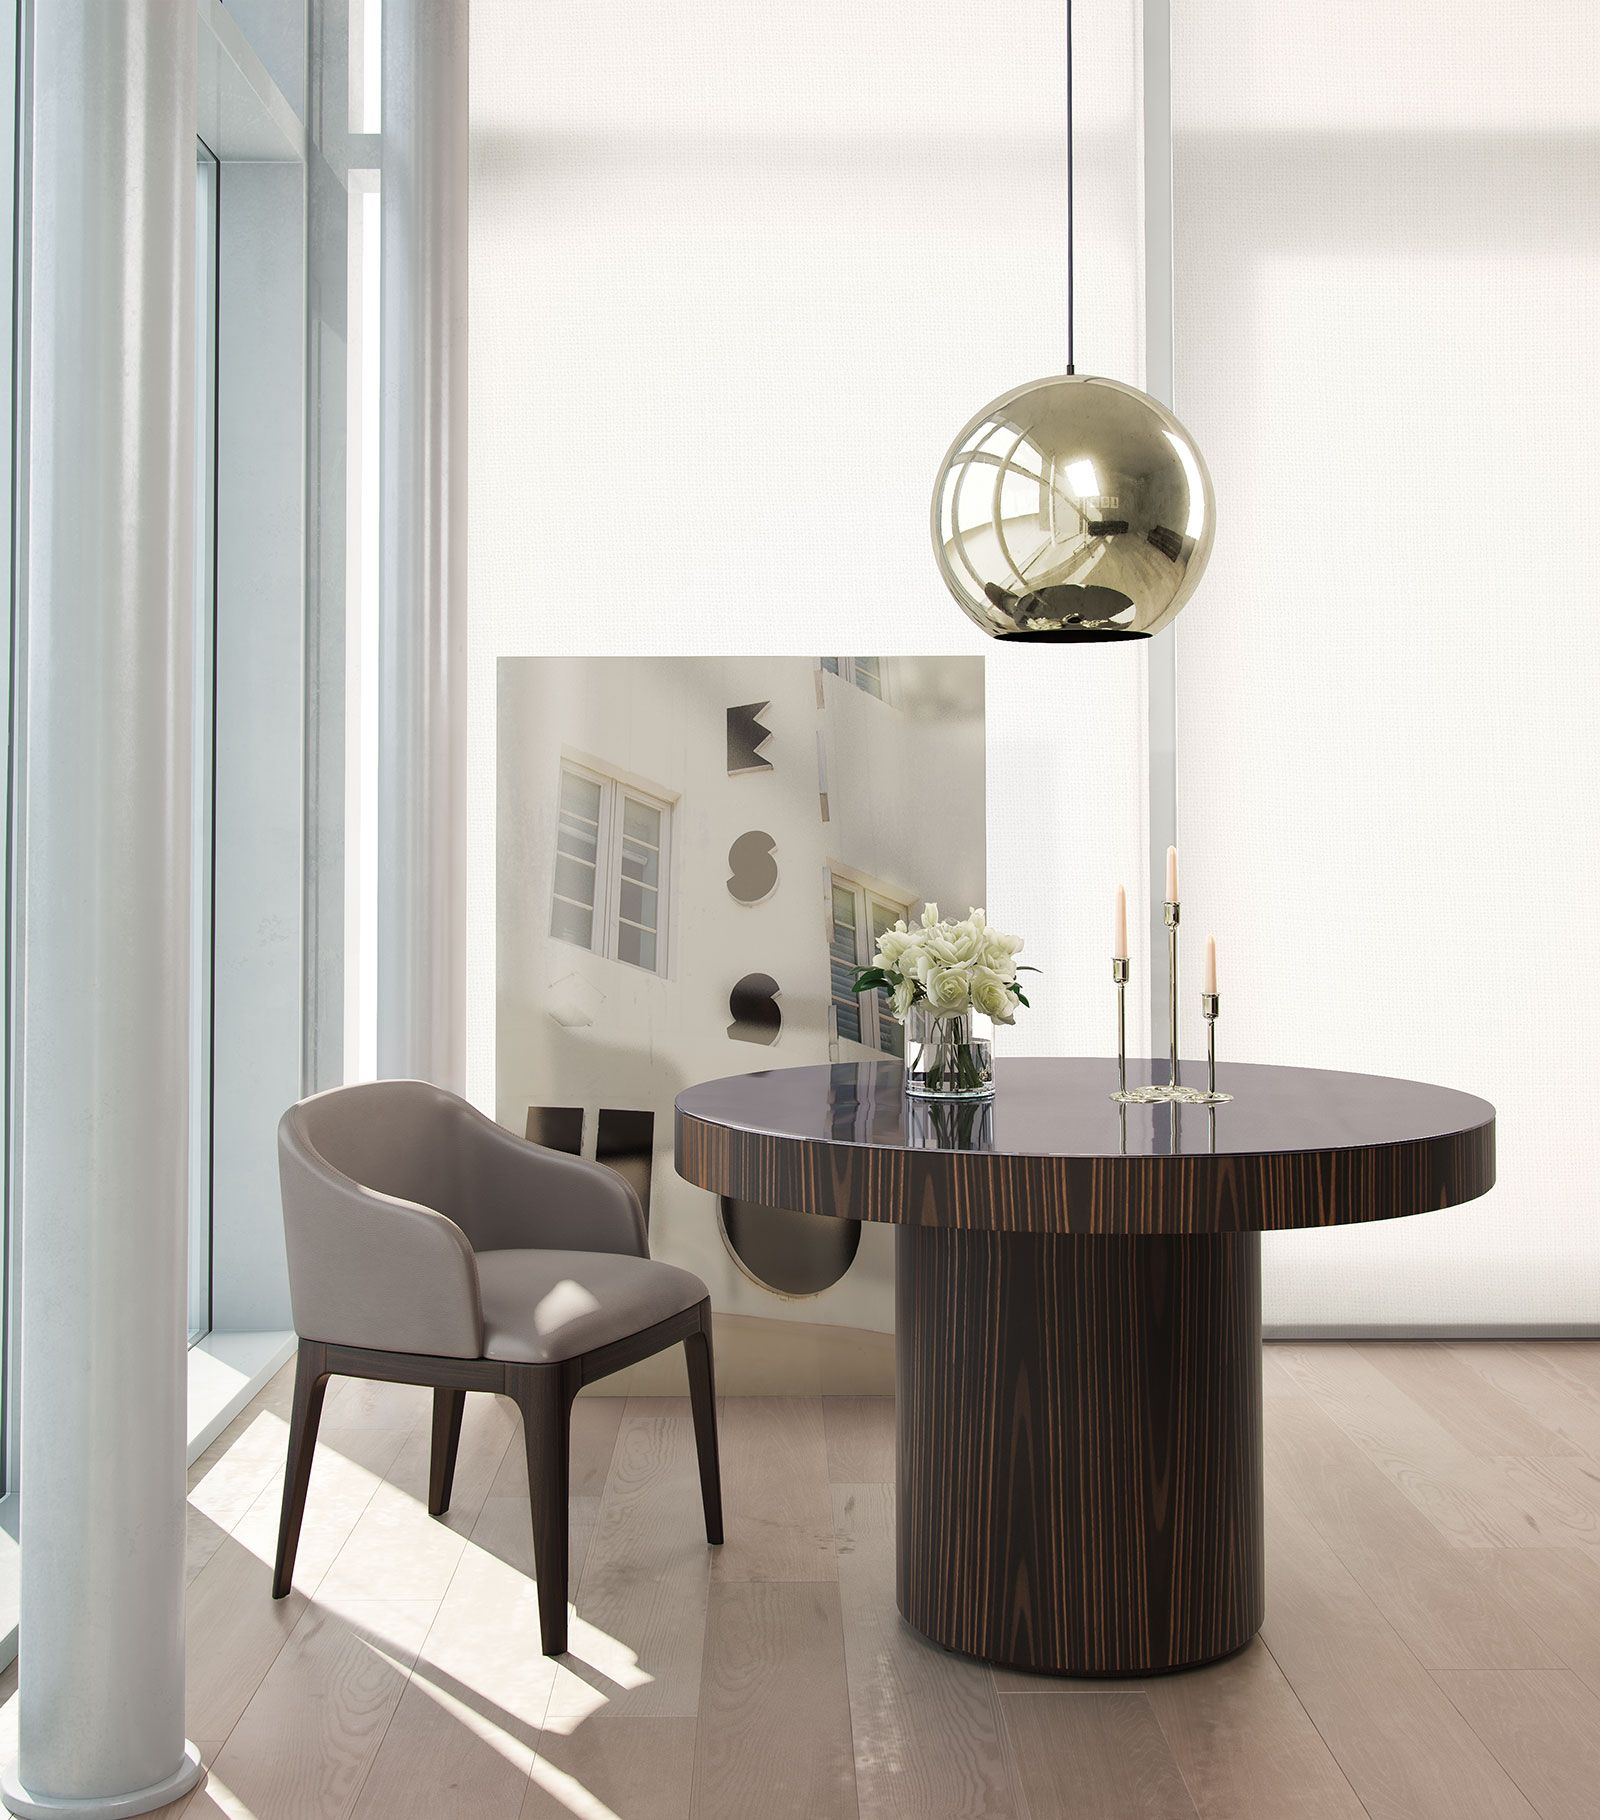 15 High End Contemporary Dining Room Designs: Enjoy The Warmth Of Brazilian Wood Or The Elegance Of High